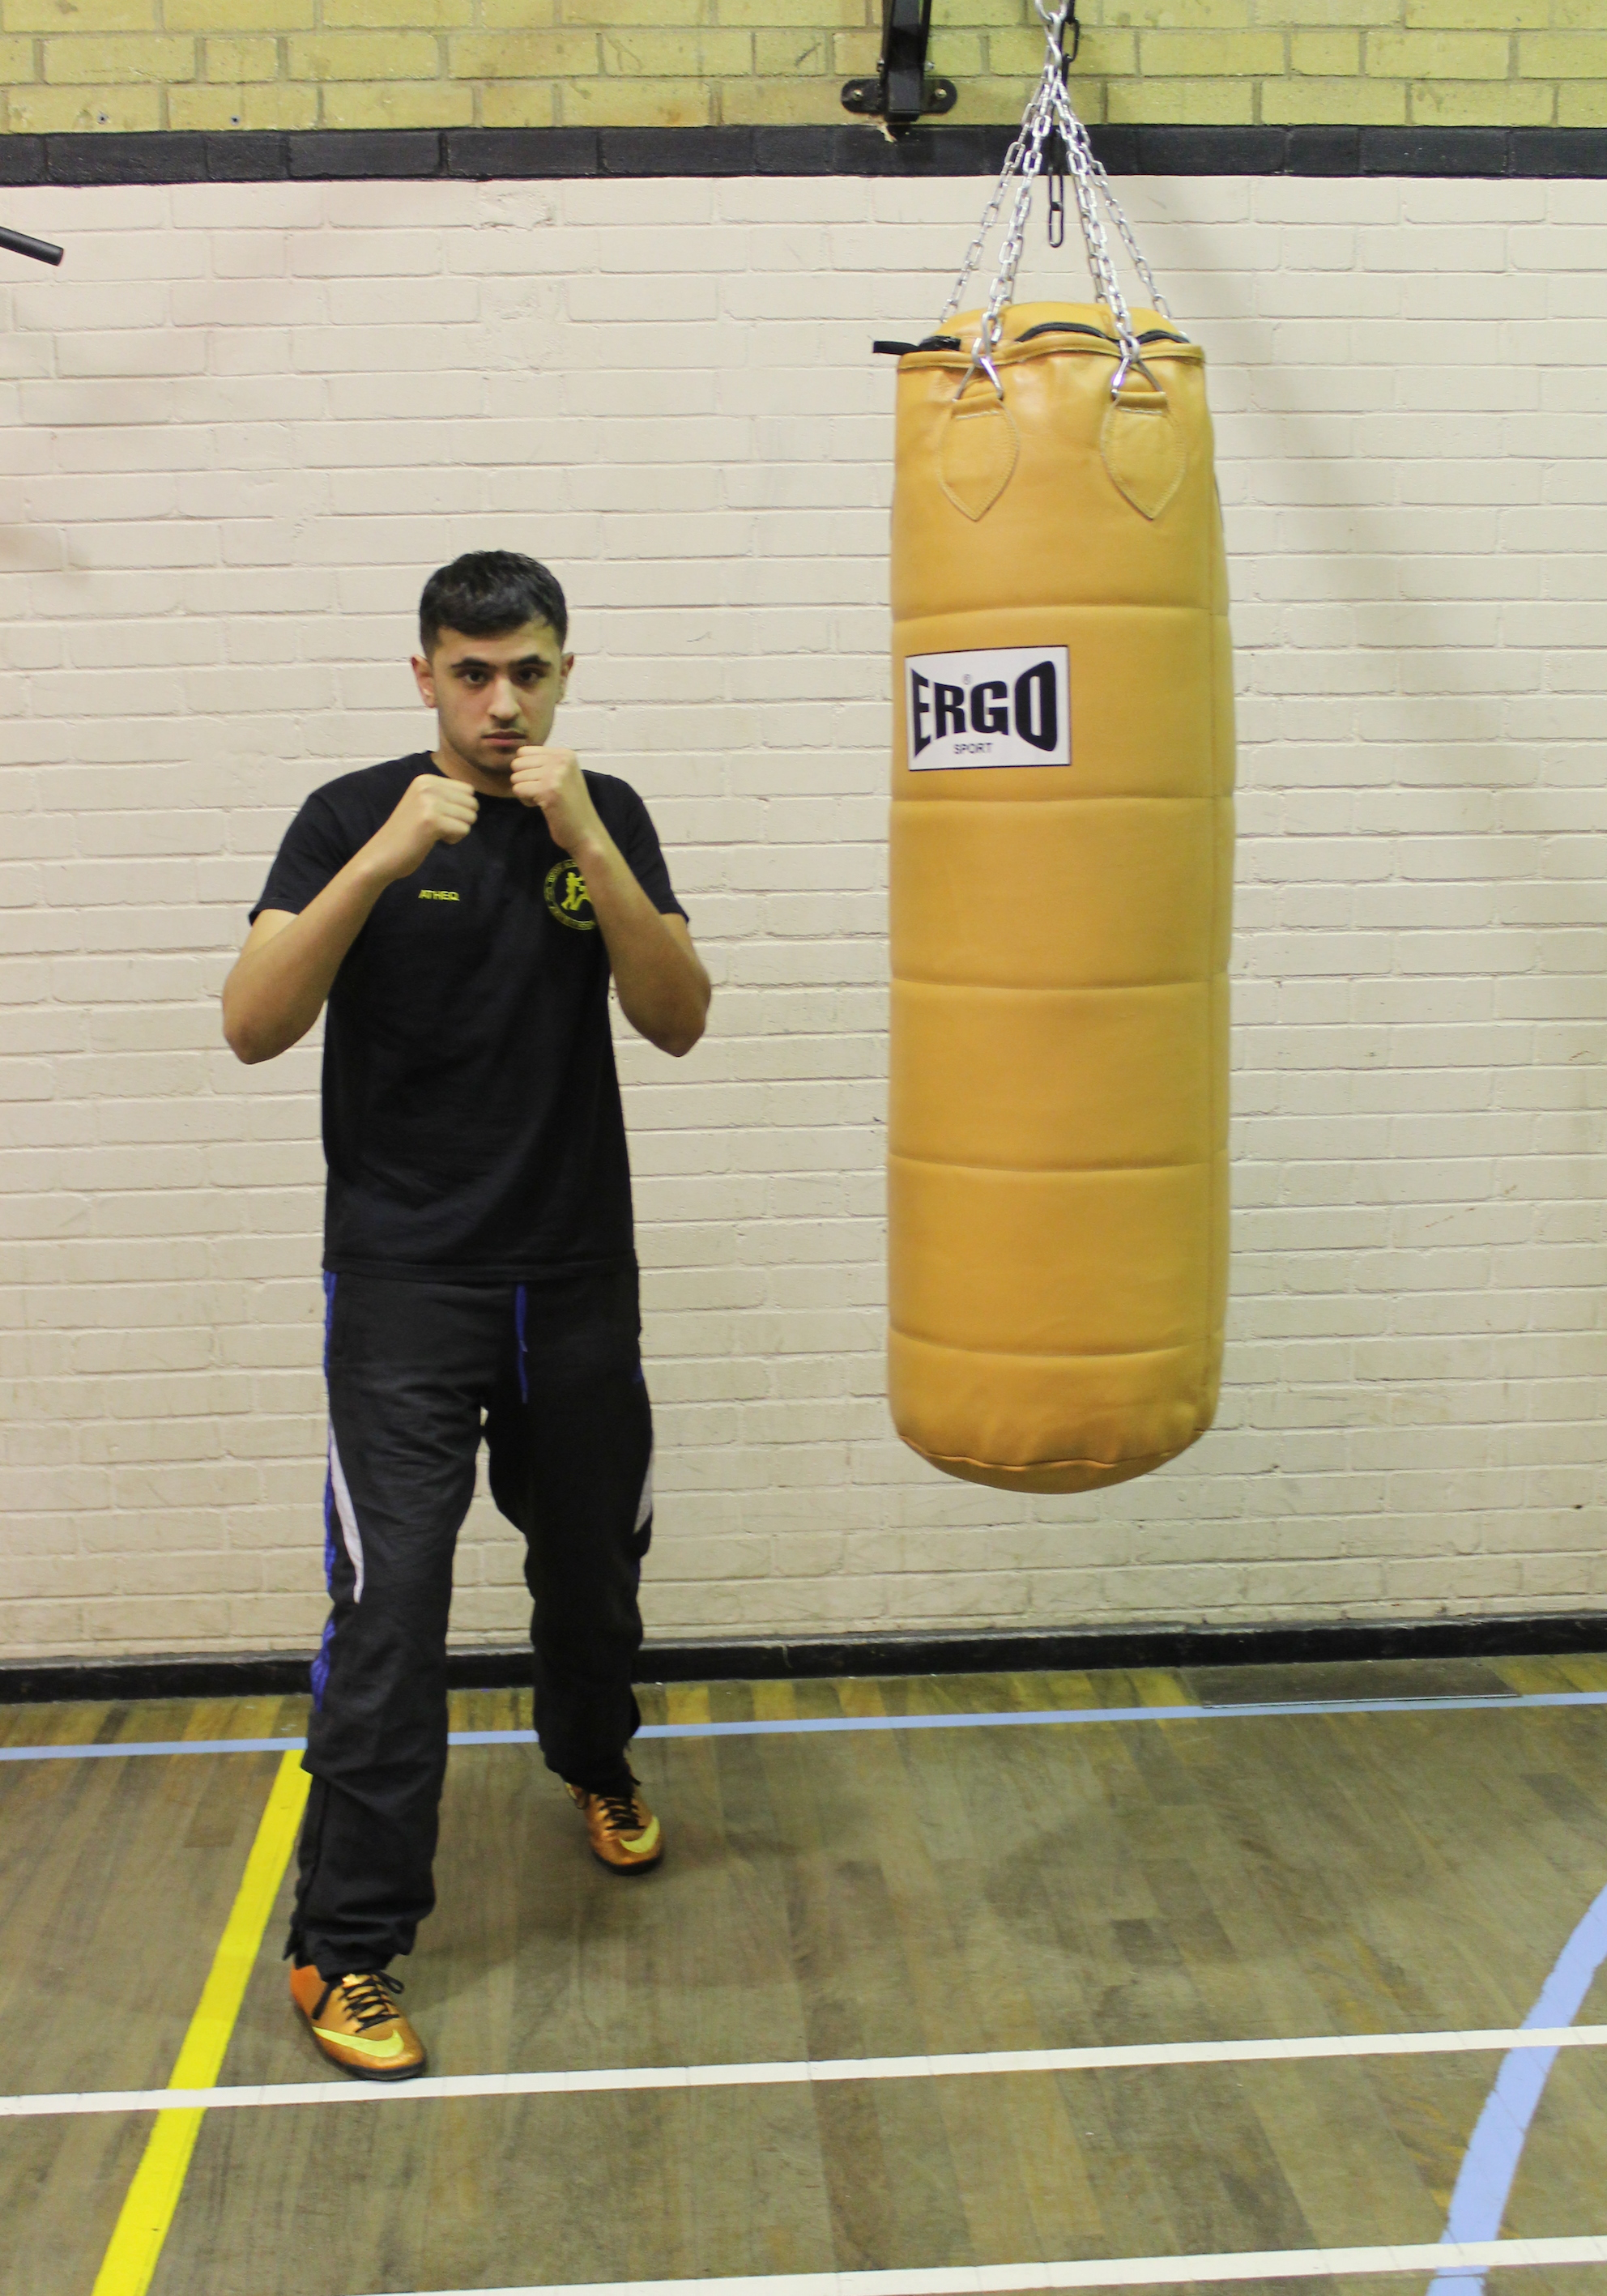 Atheq Ahmed - Youth Boxer @ Blackbird Leys Boxing Club Oxford